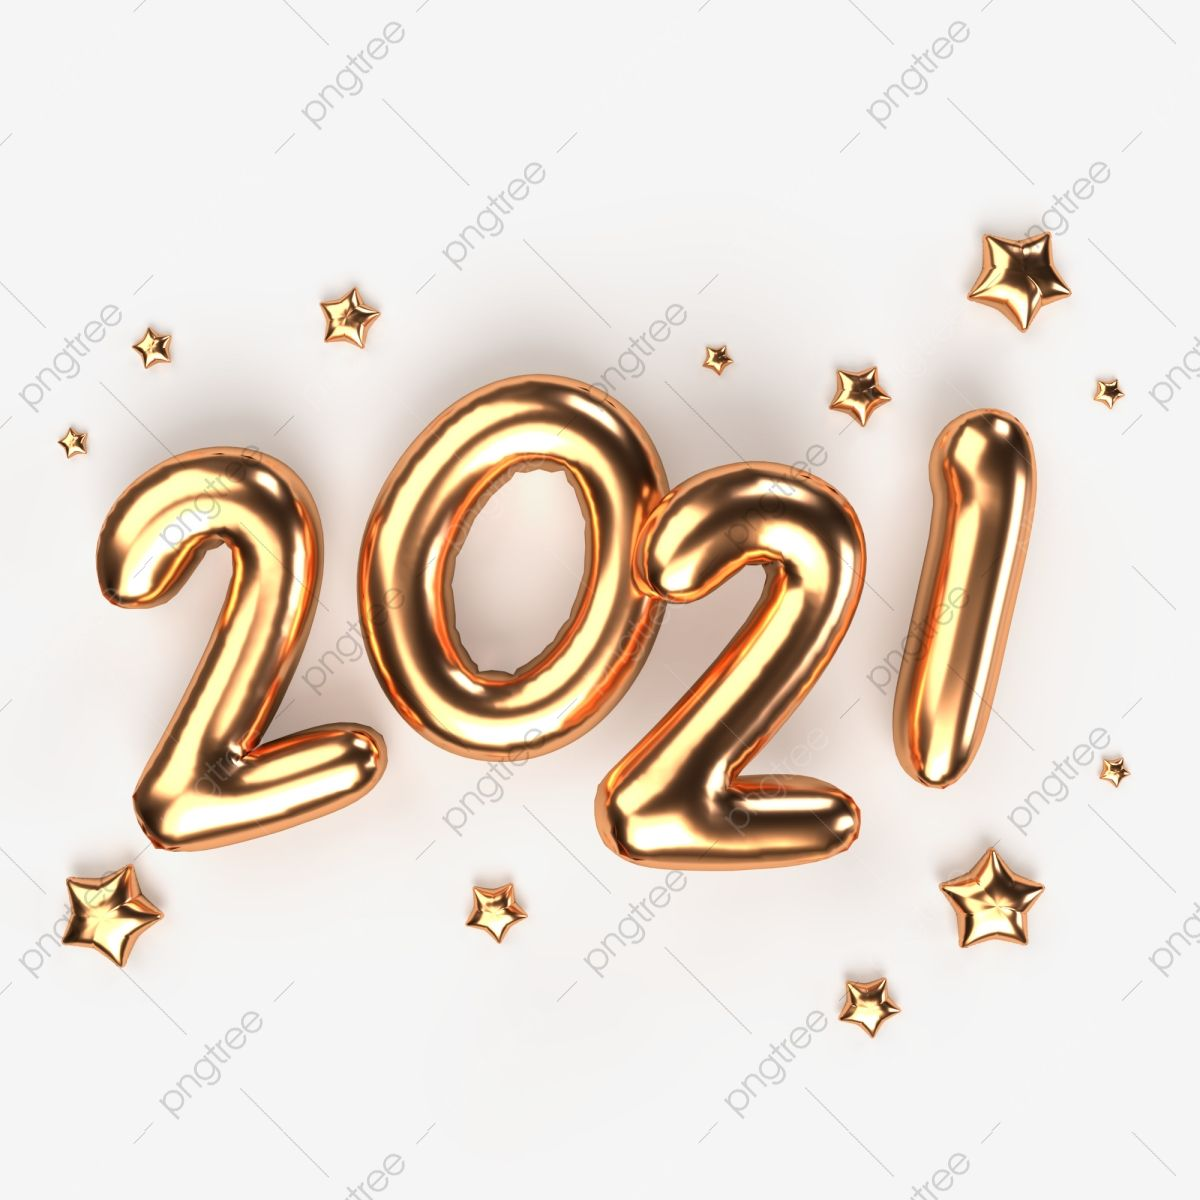 Download This Happy New Year 2021 Golden Metal Numbers Realistic 3d Render Of Signs Numbers Clipart Dec Happy New Year Png Happy New Year Happy New Year 2021